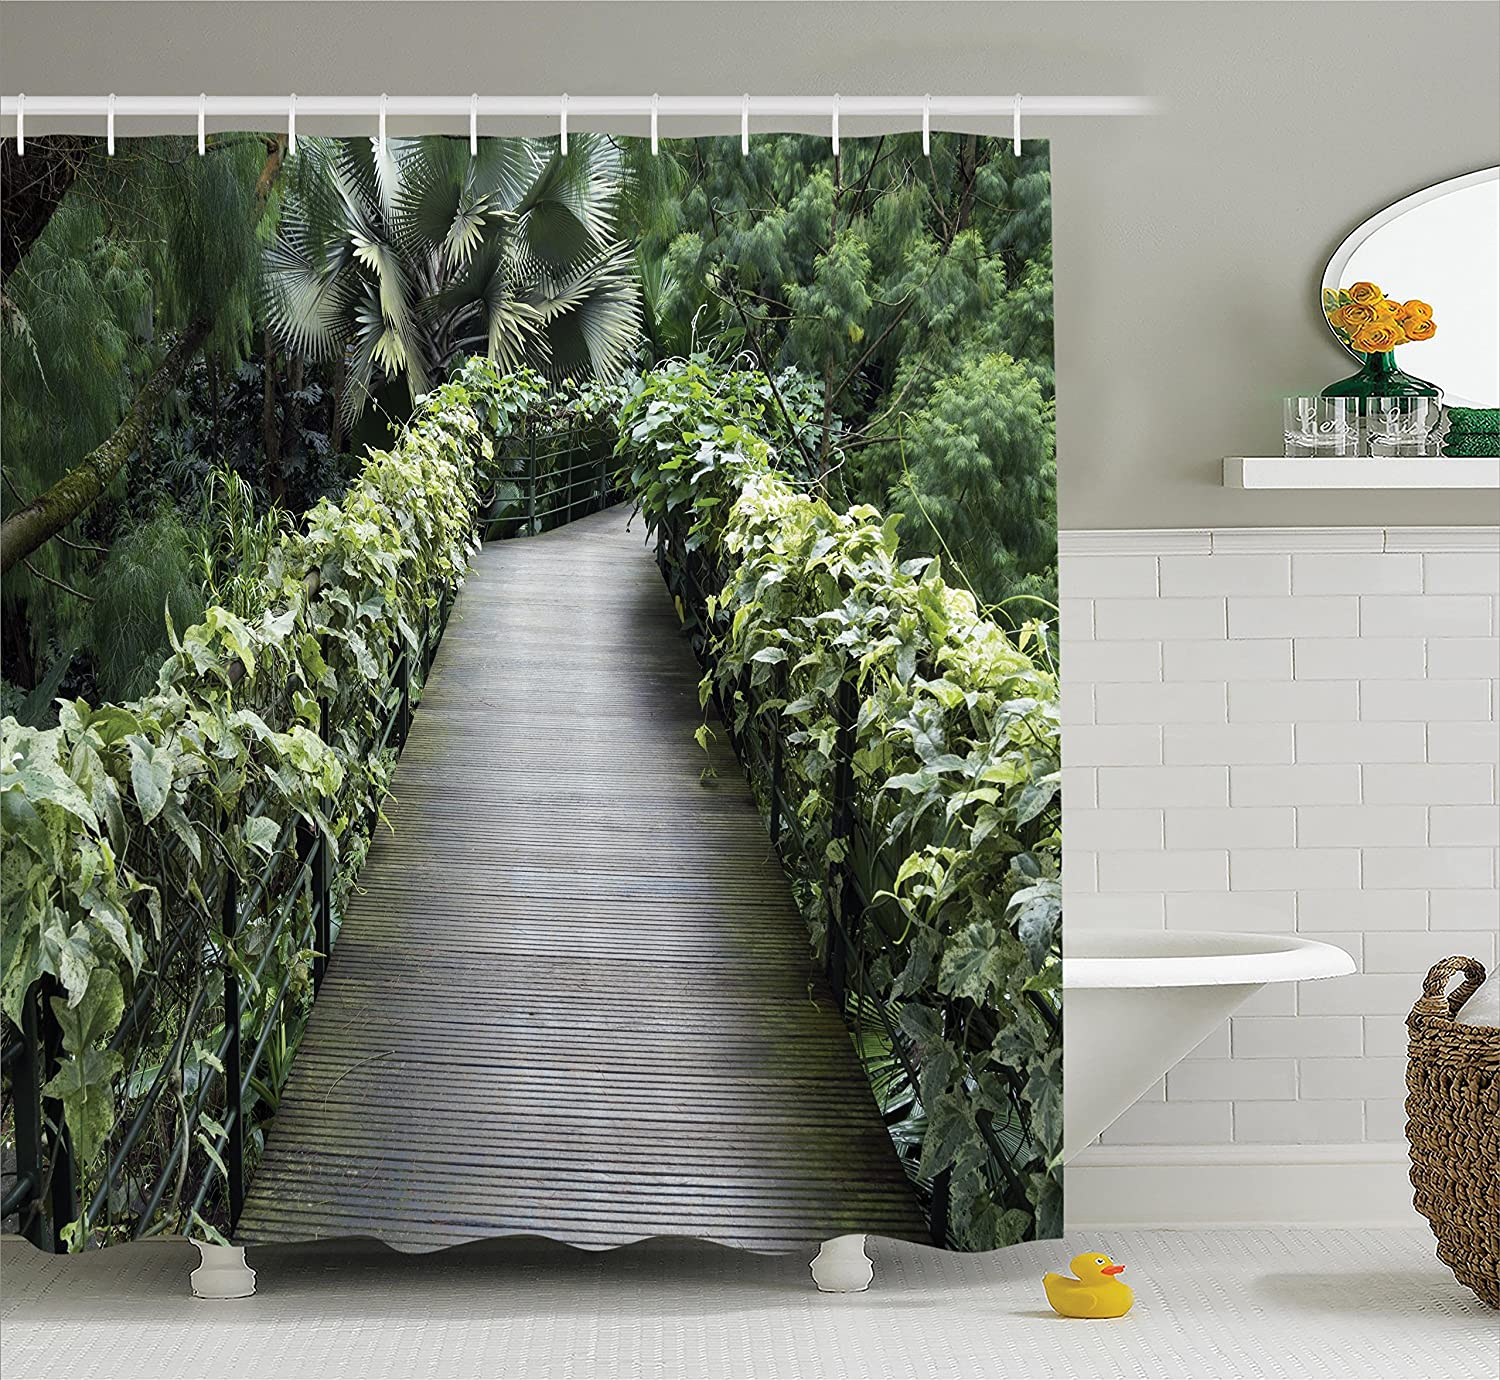 Ambesonne Outdoor Shower Curtain Nature Decor Scenic Wooden Pathway In Singapore Botanical Garden Fence Rainforest Tropical Bathroom Accessories